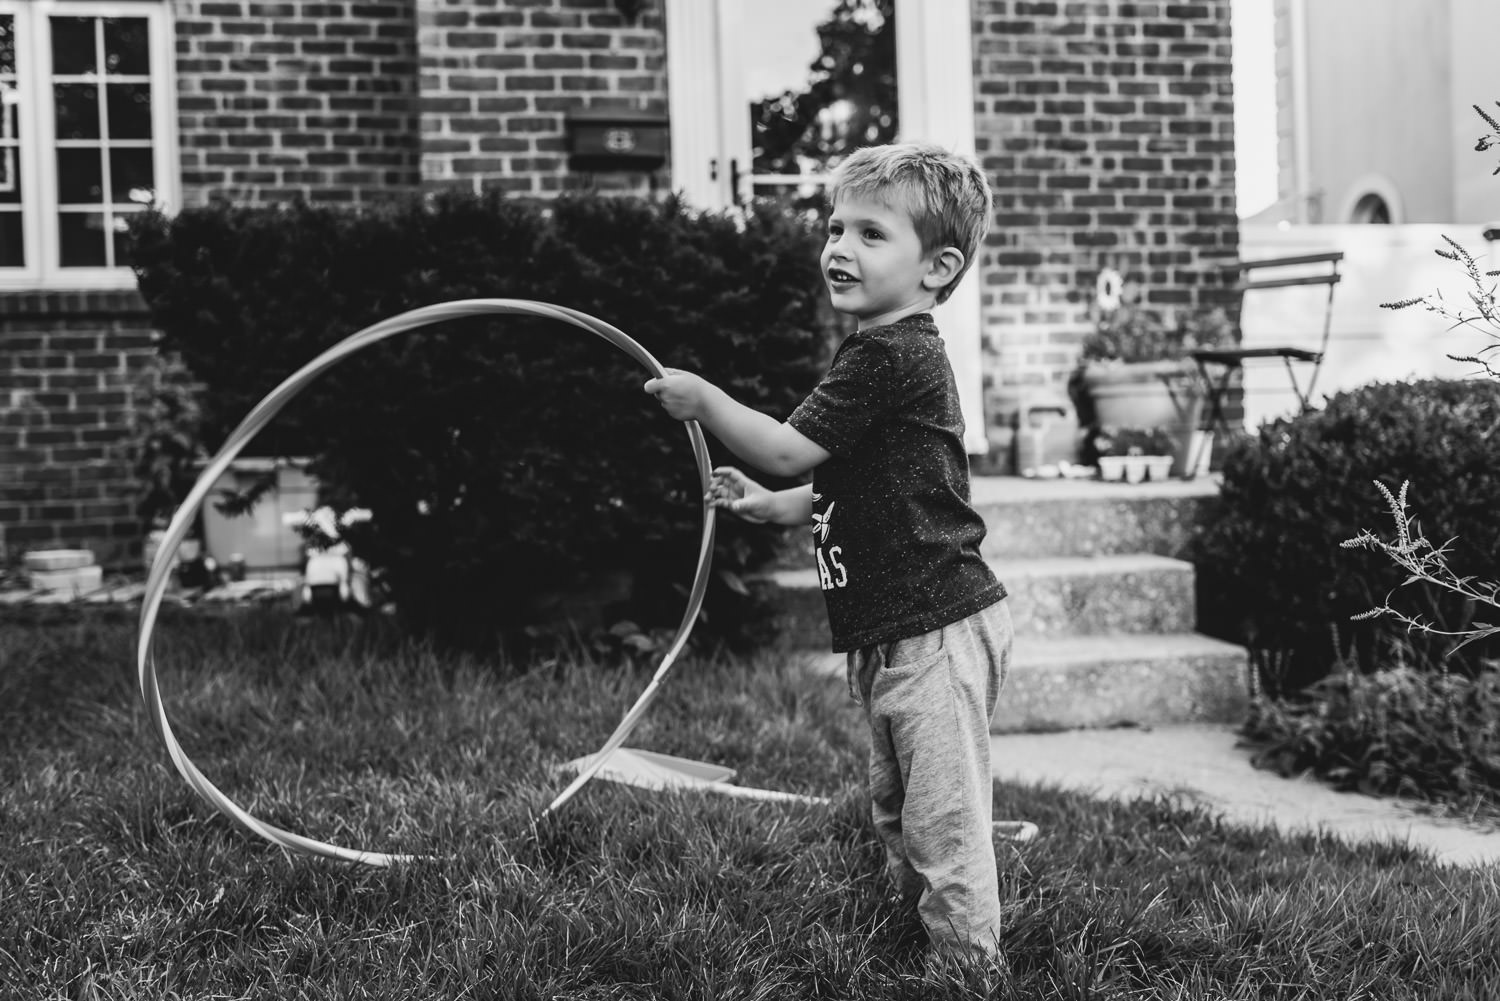 A little boy plays with a hula hoop in the yard.